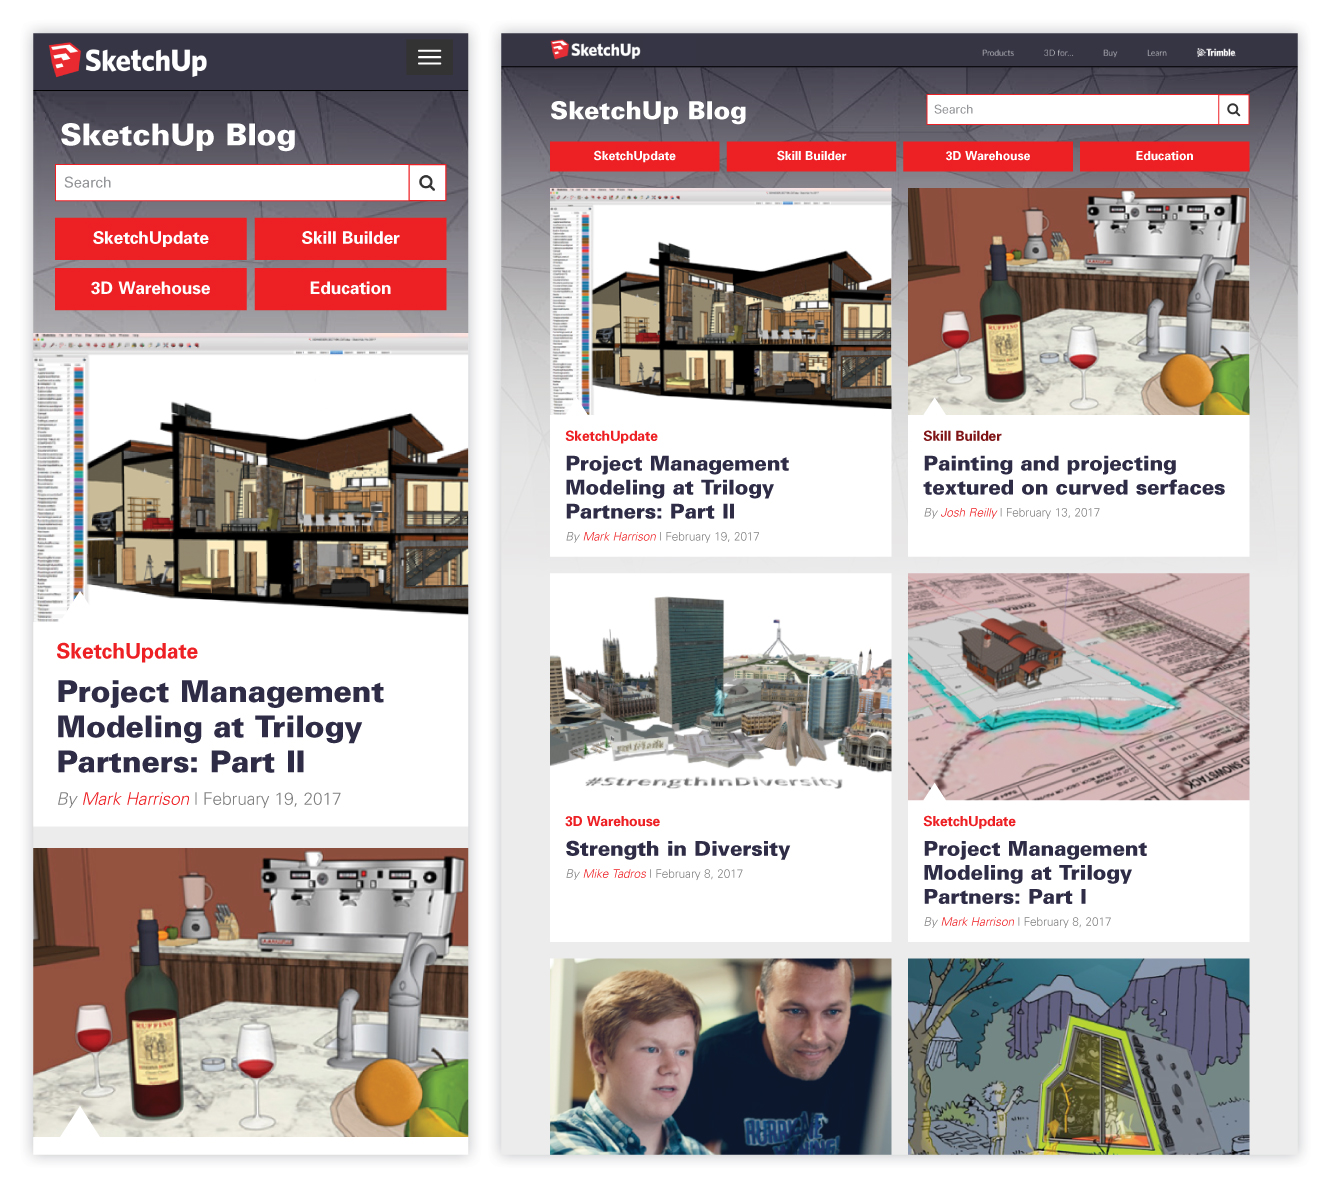 SketchUp Blog Case Study and Redesign 2 of 6